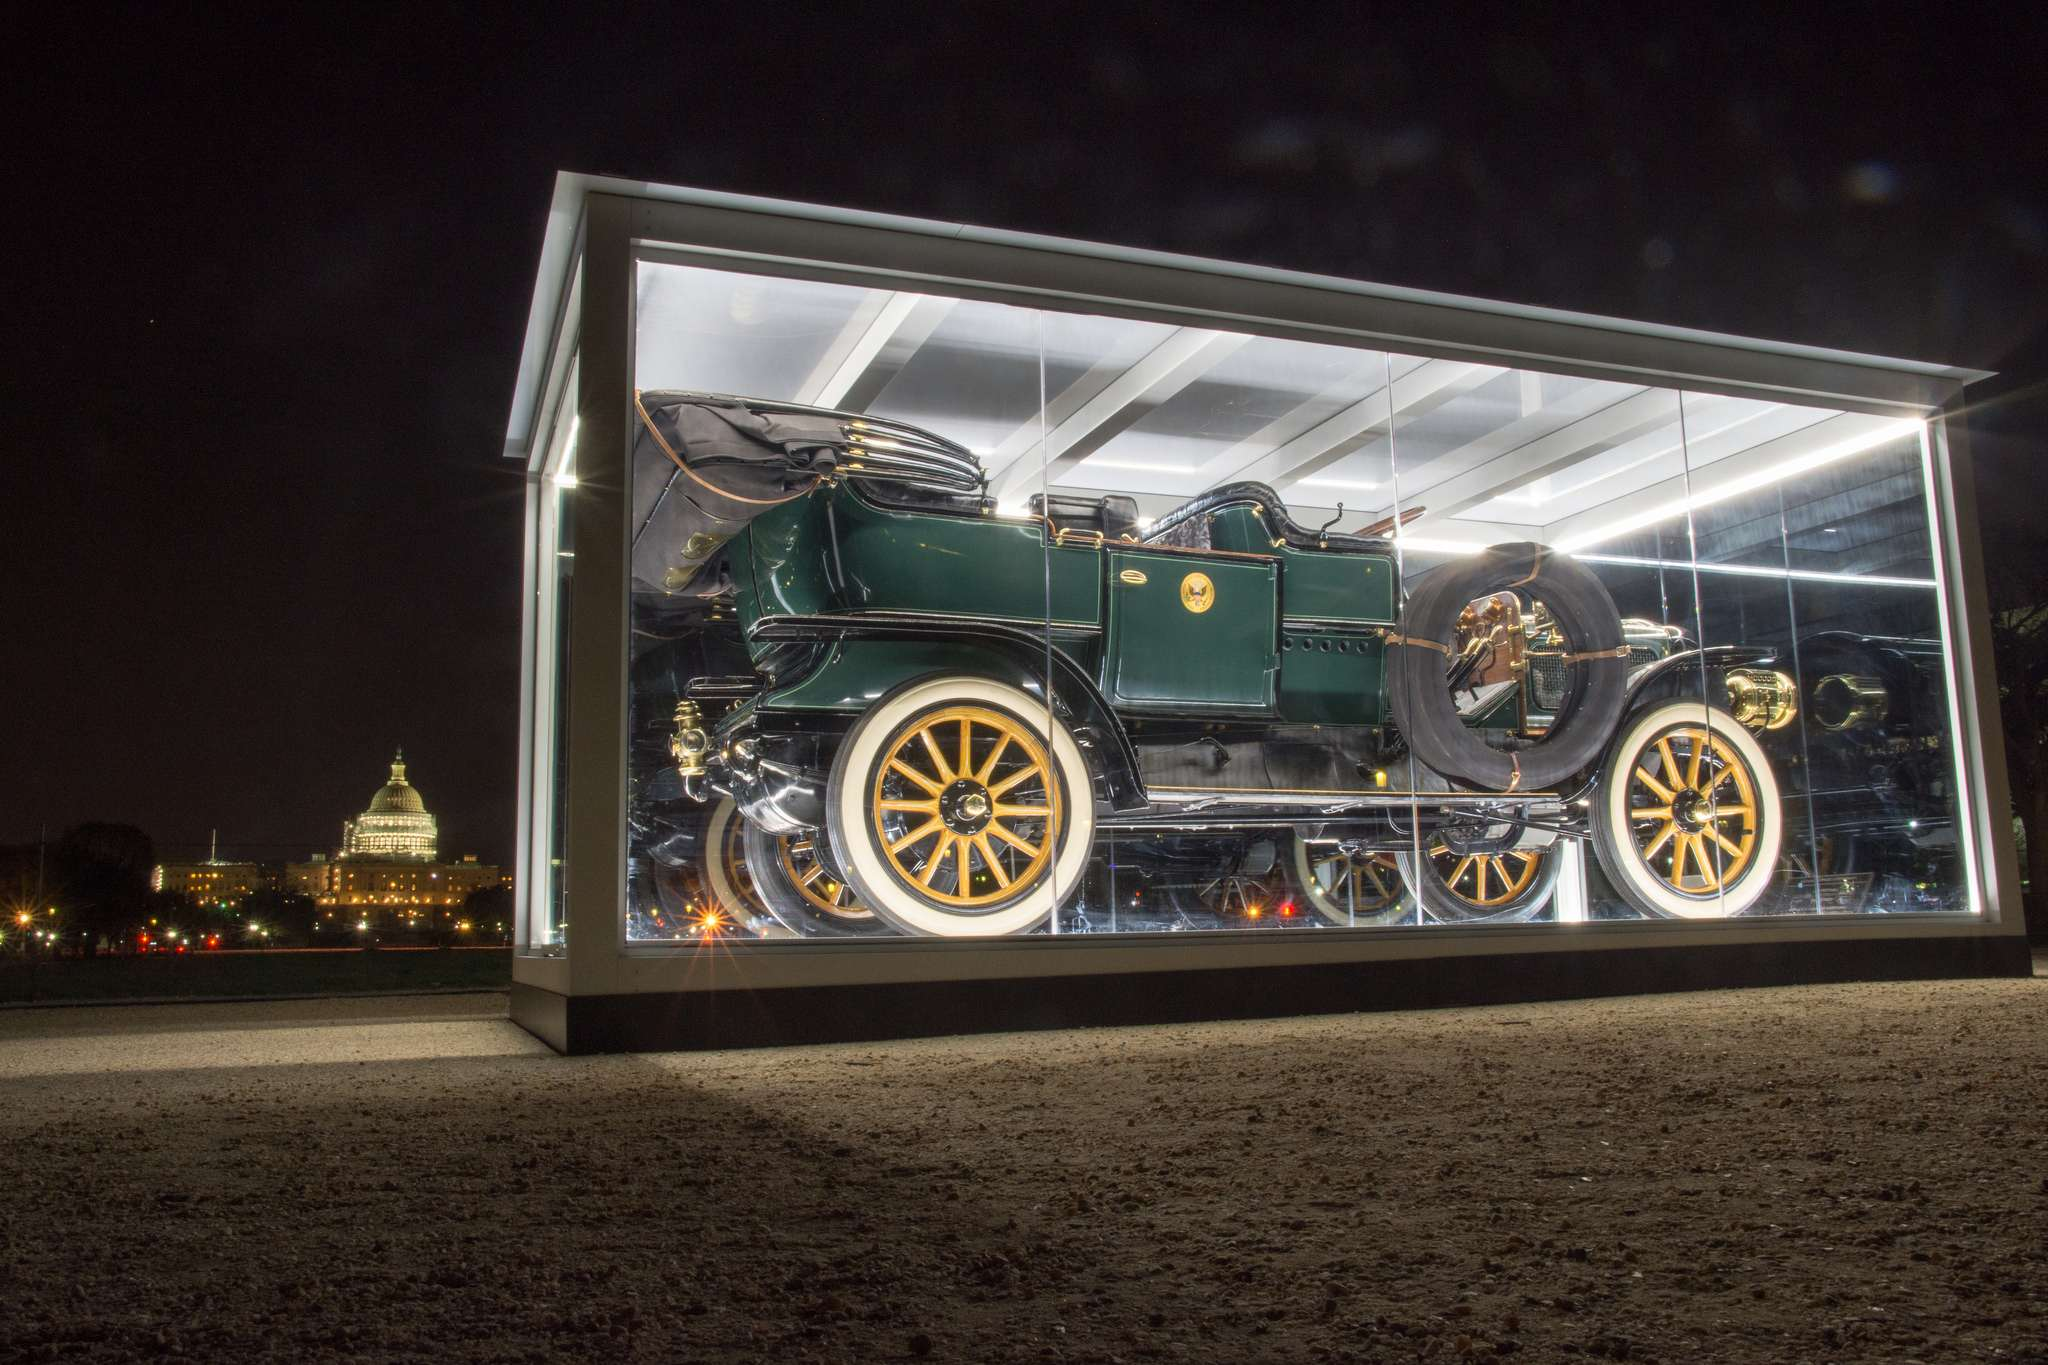 taft steam car Exhibition of Presidential Taft Steam Car at the National Mall